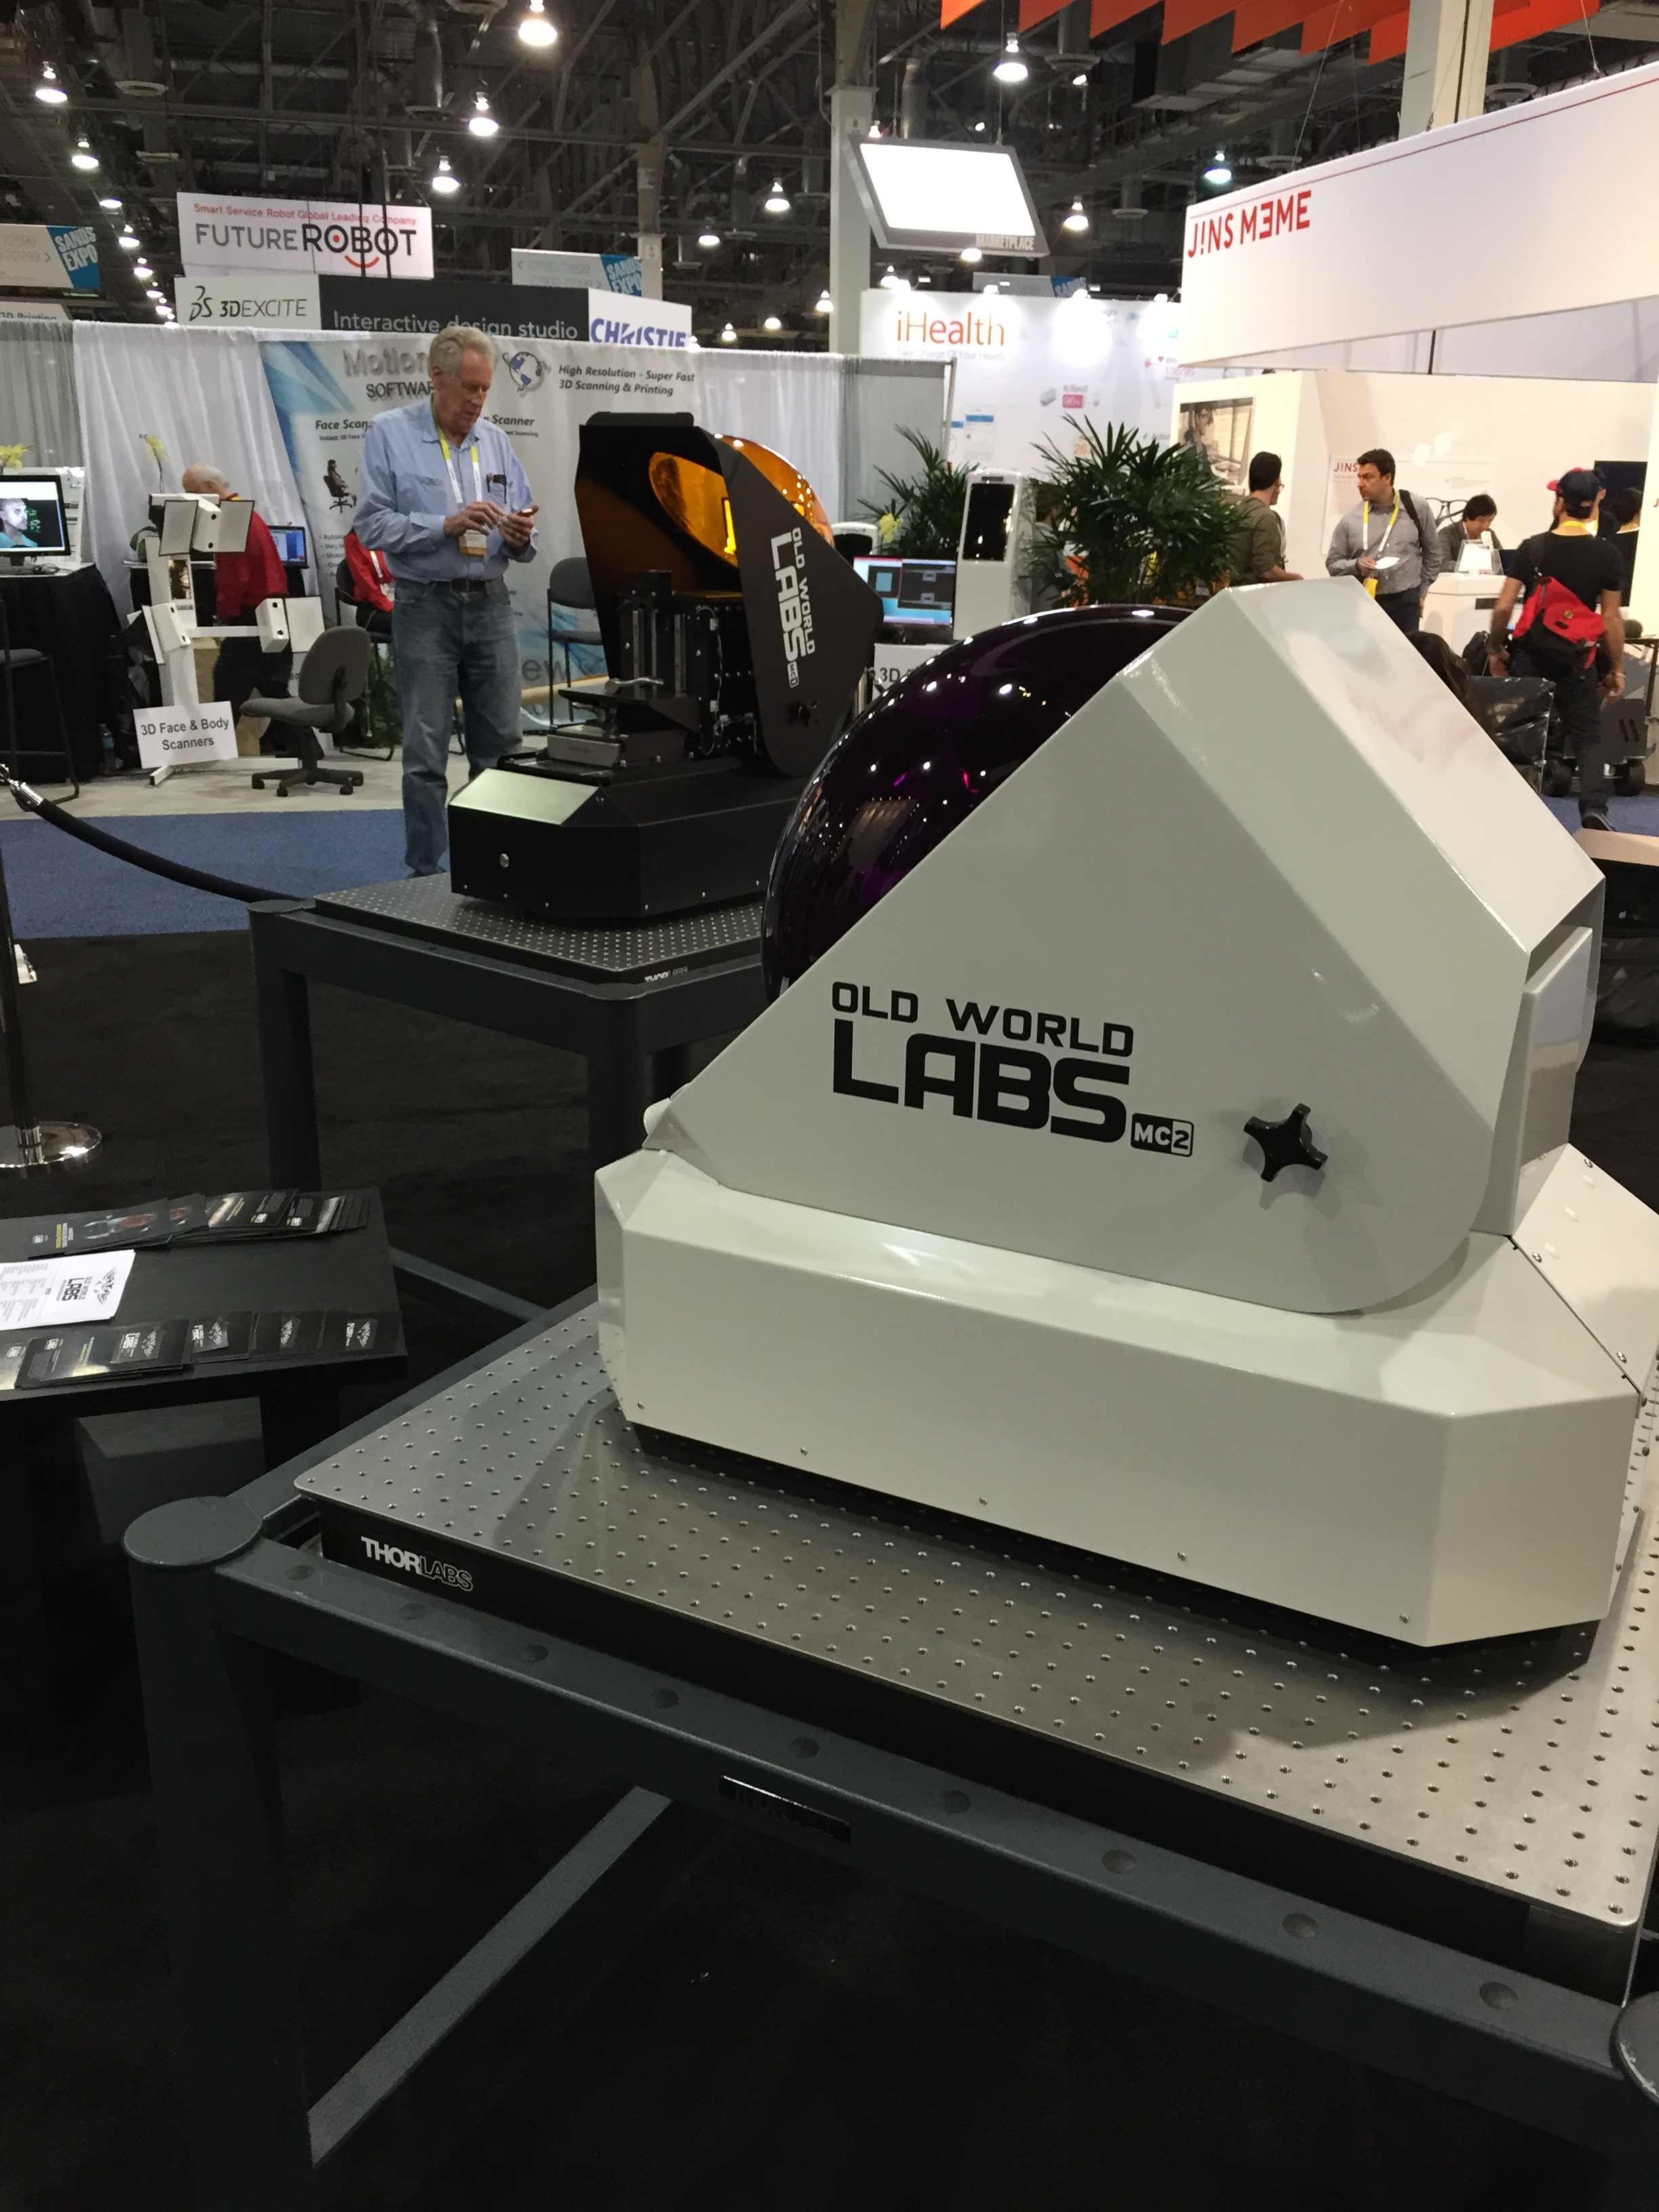 D Printer Exhibition Usa : Old world labs d printing services for micro resolution virginia usa